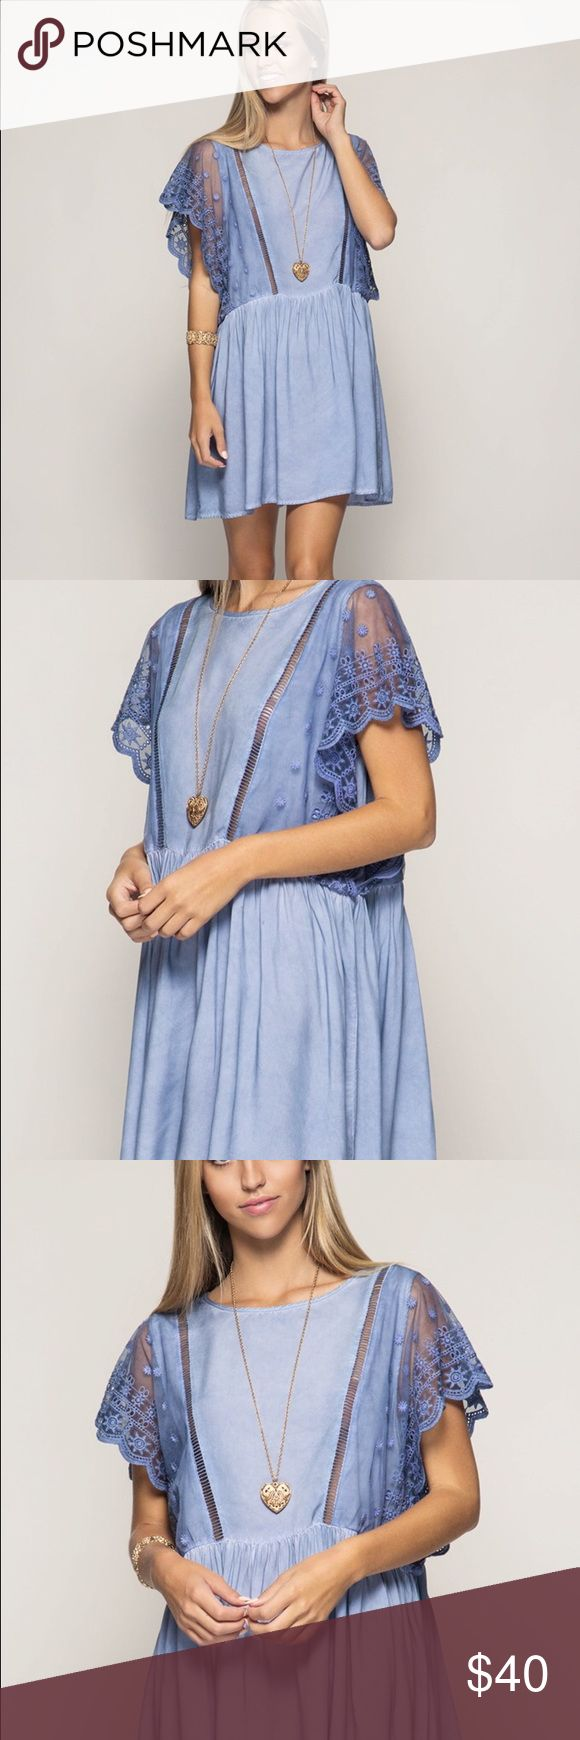 Flirty short sleeve dress Super flirty short sleeve mineral wash swing dress with lace sleeves. Dresses Mini